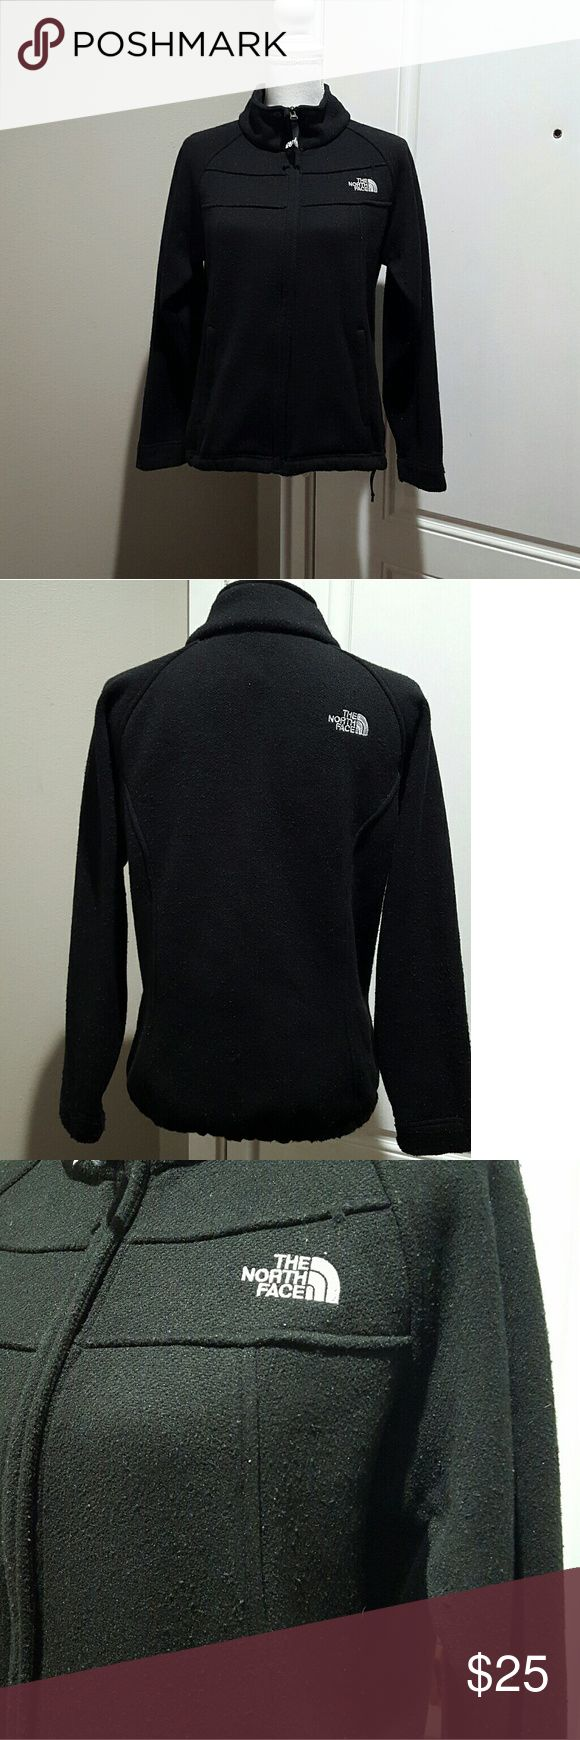 Women's black The North Face zip up, medium Women's black The North Face zip up jacket.  No stains or rares, has a lot of fuzzies though. North Face Tops Sweatshirts & Hoodies